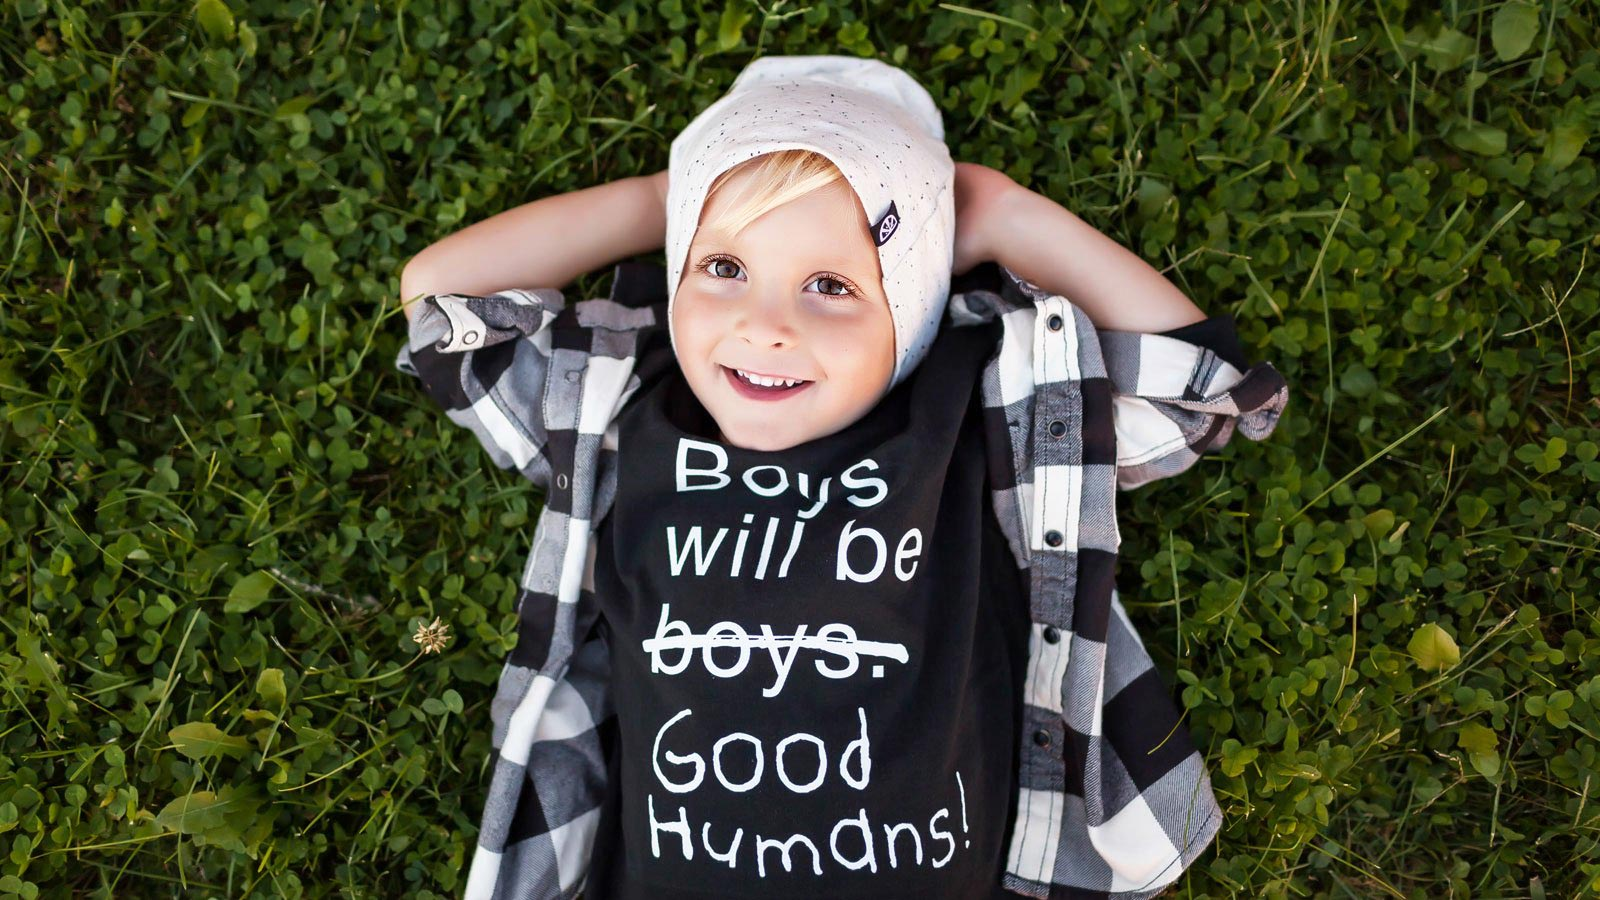 ee7a6beabd2b Free To Be Kids  Positive Fashion for Awesome Kids